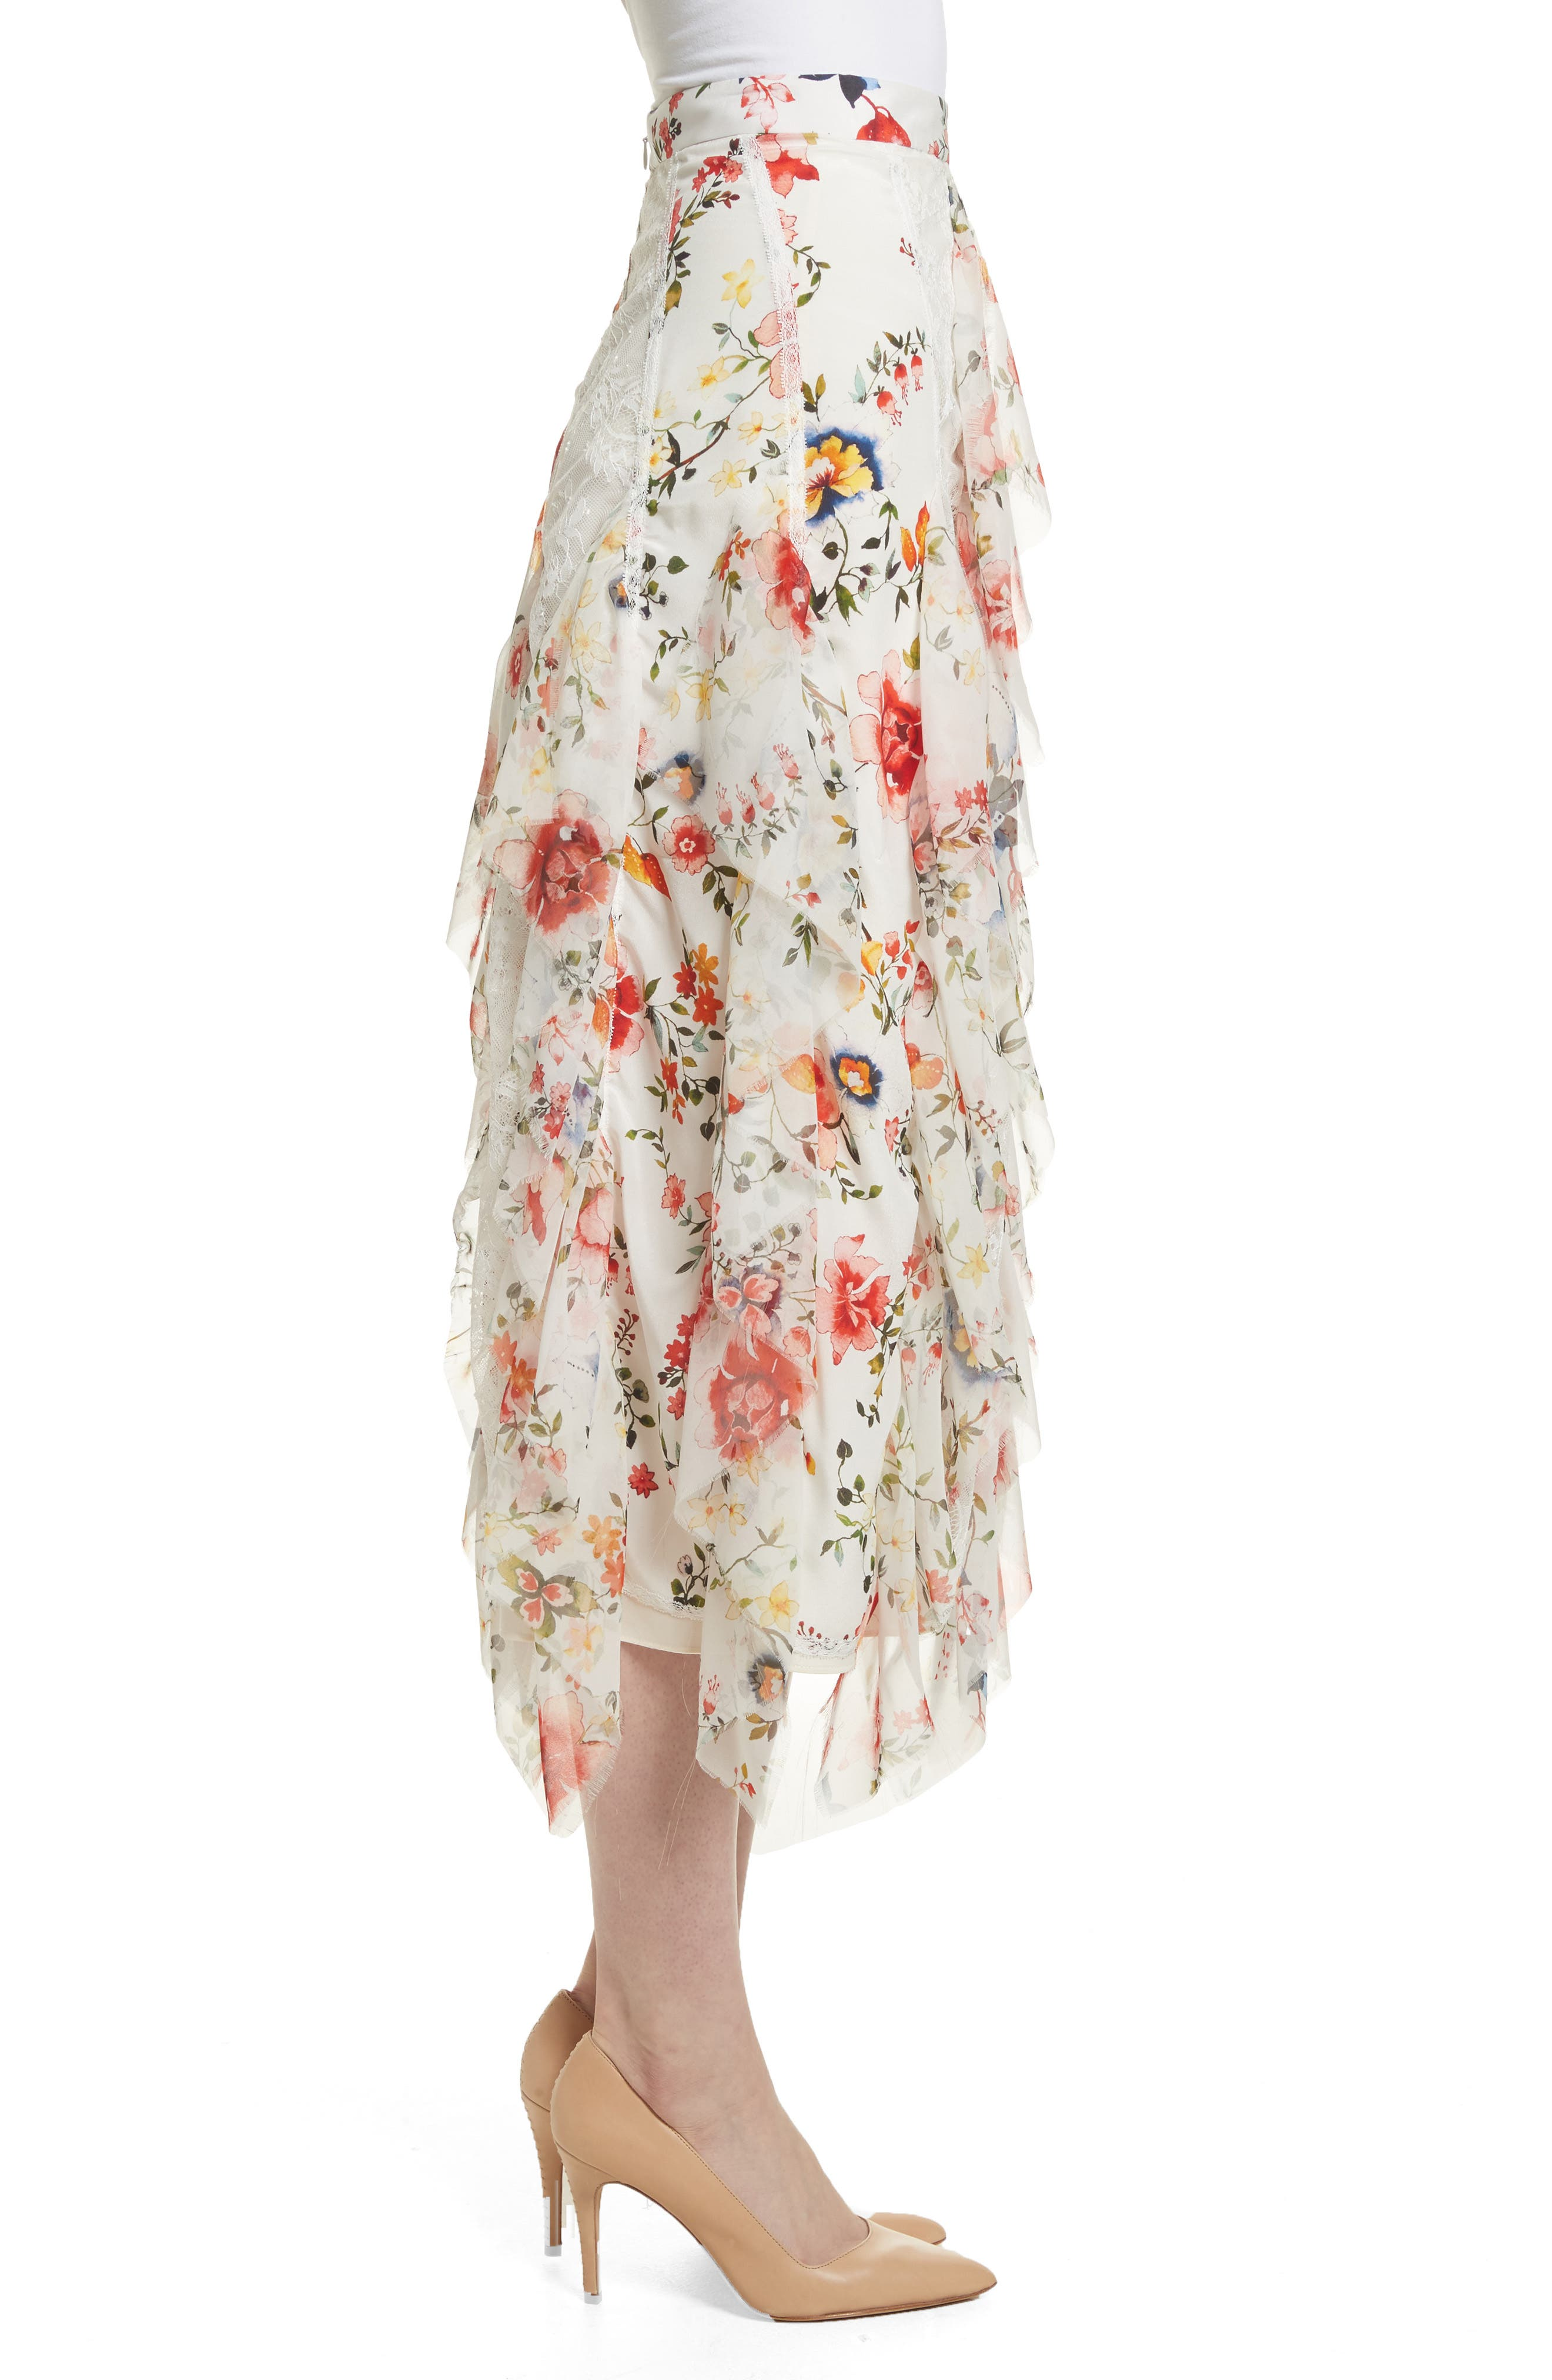 Yula Floral Silk & Lace Midi Skirt,                             Alternate thumbnail 3, color,                             Floral Soiree-Soft White